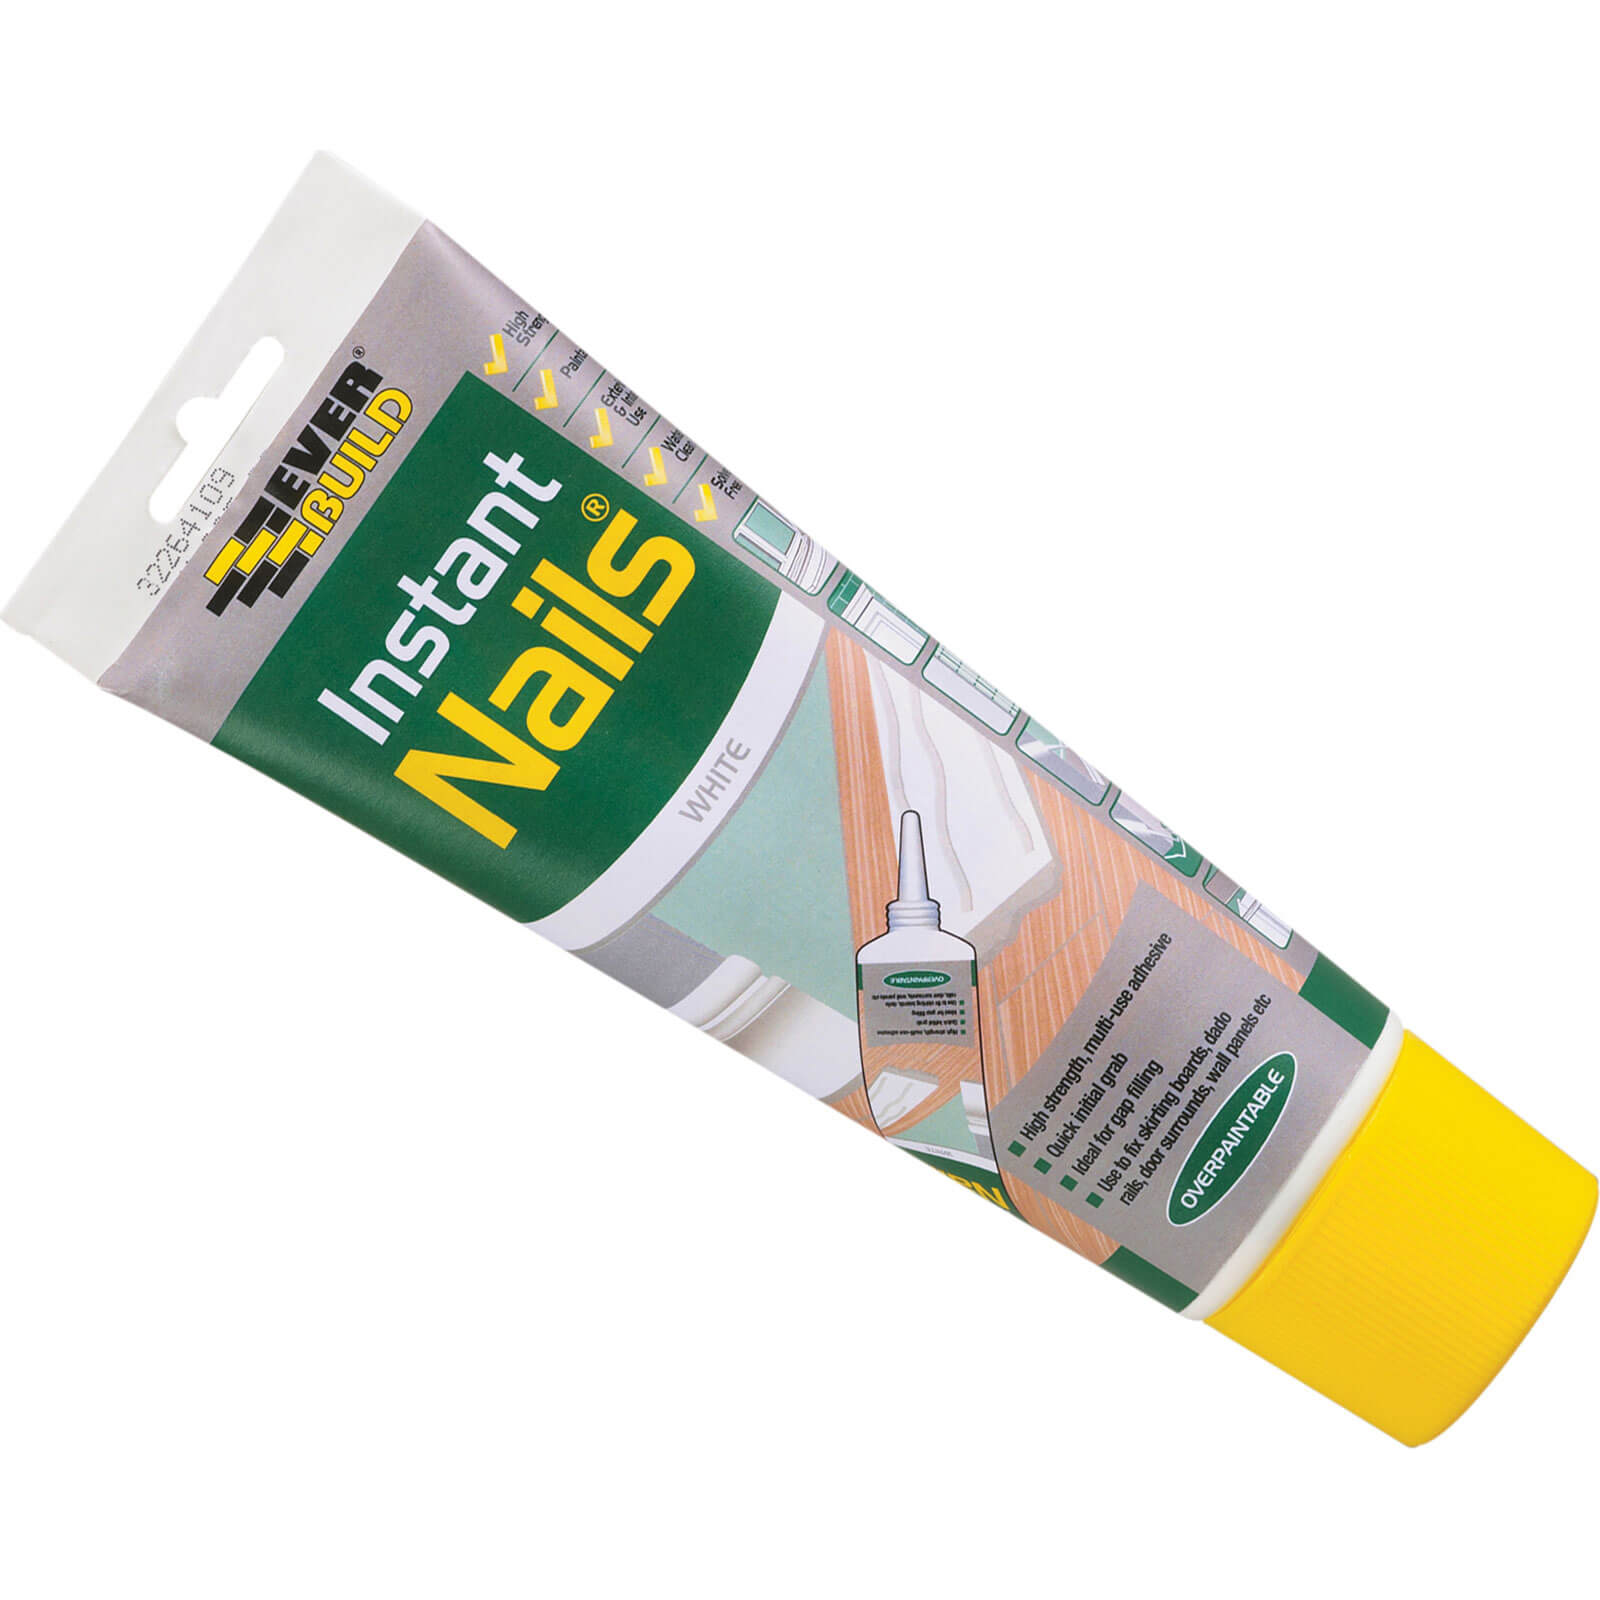 Tooled Up/Sealants & Adhesives/Adhesives/Everbuild Easi-sq Instant Nails Adhesive 200ml